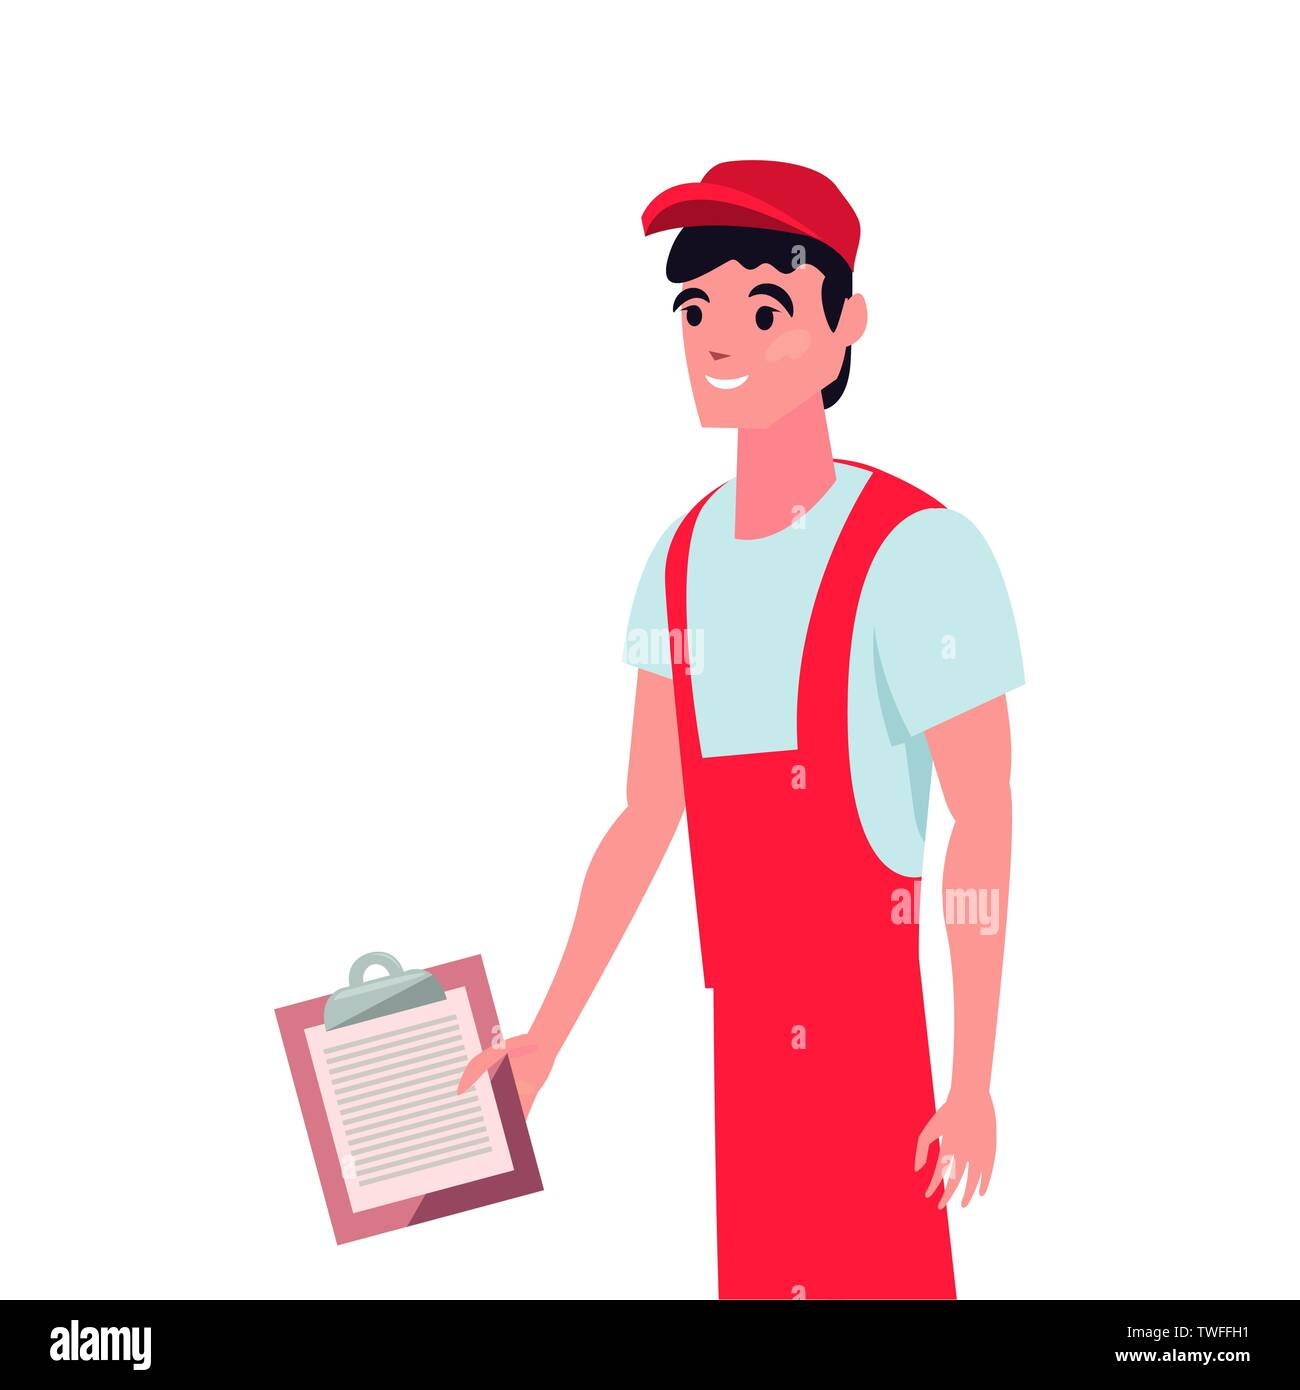 delivery man employee with clipboard vector illustration - Stock Image